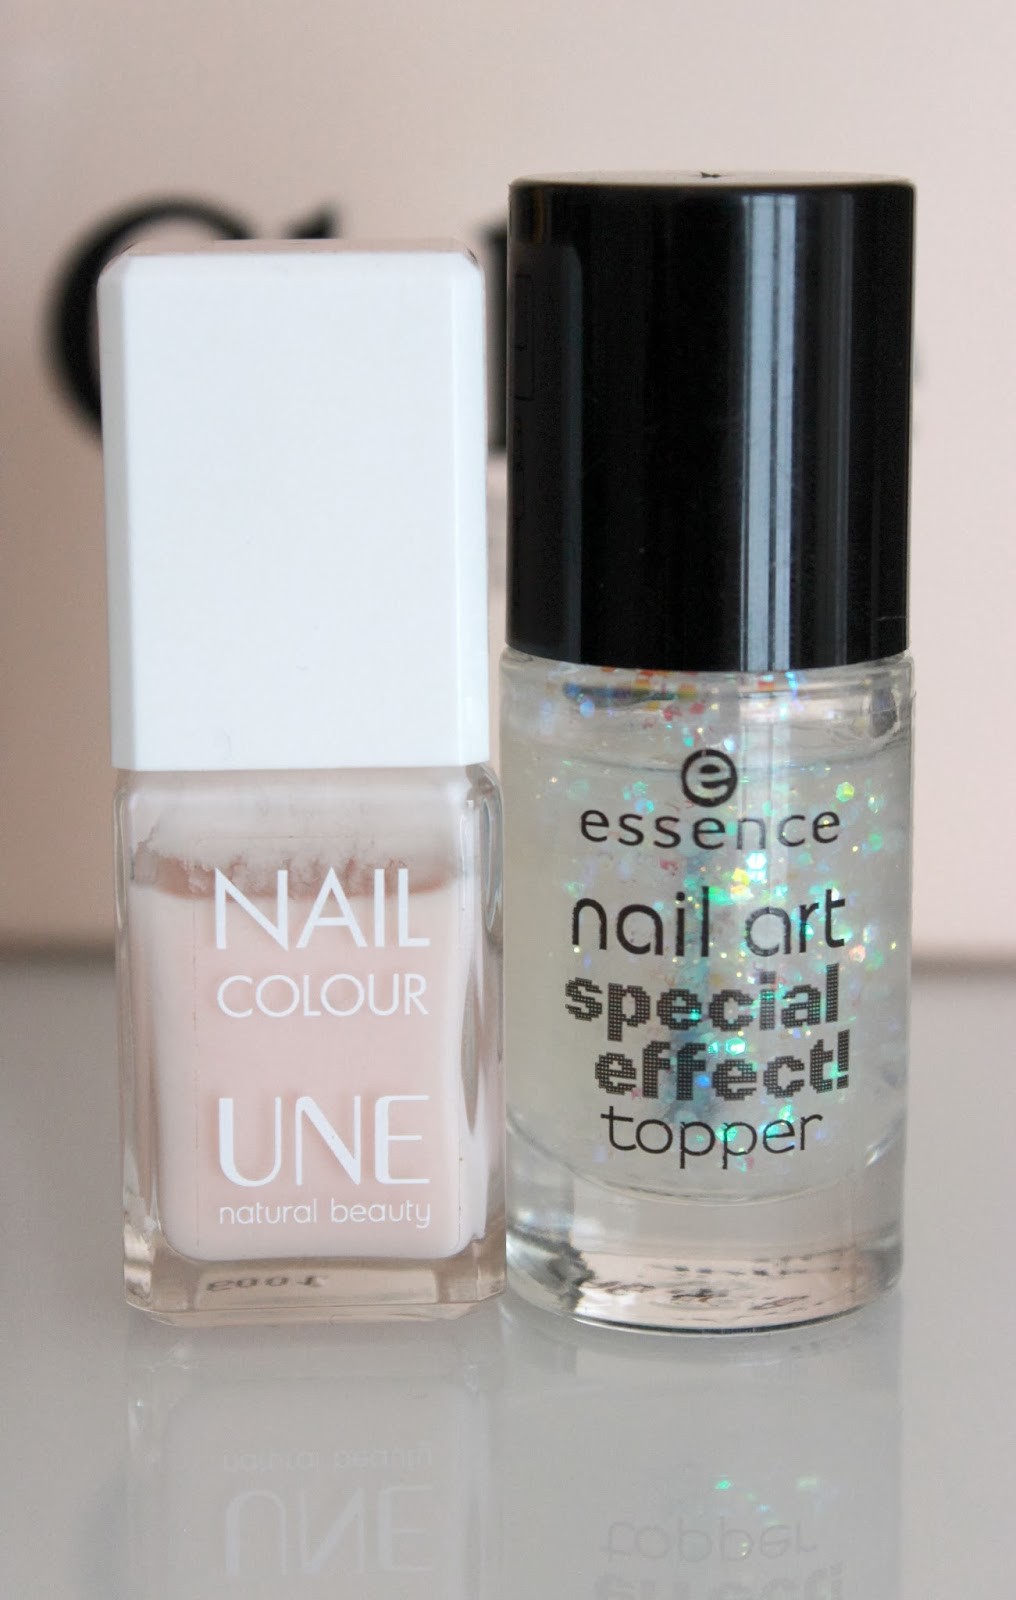 Nail Polish Essence Cool Breeze, UNE C01